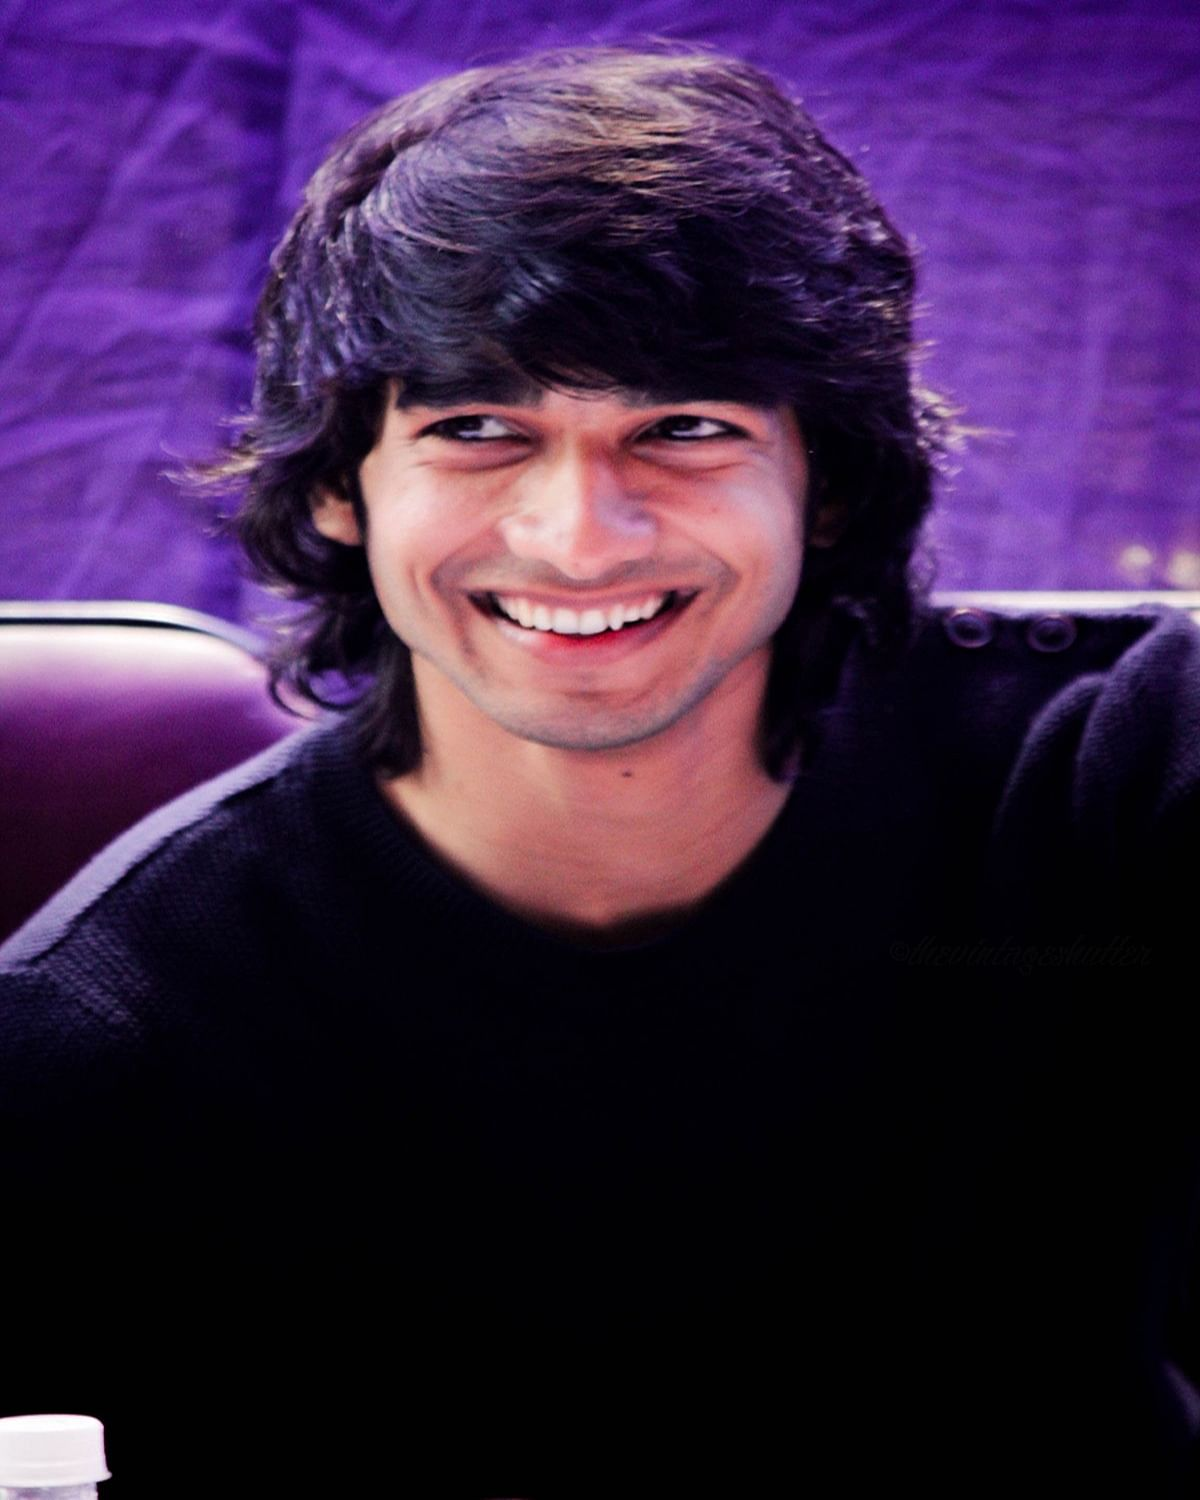 Khatron Ke Khiladi 8 winner Shantanu Maheshwari reveals how he won hearts, and the adventure show